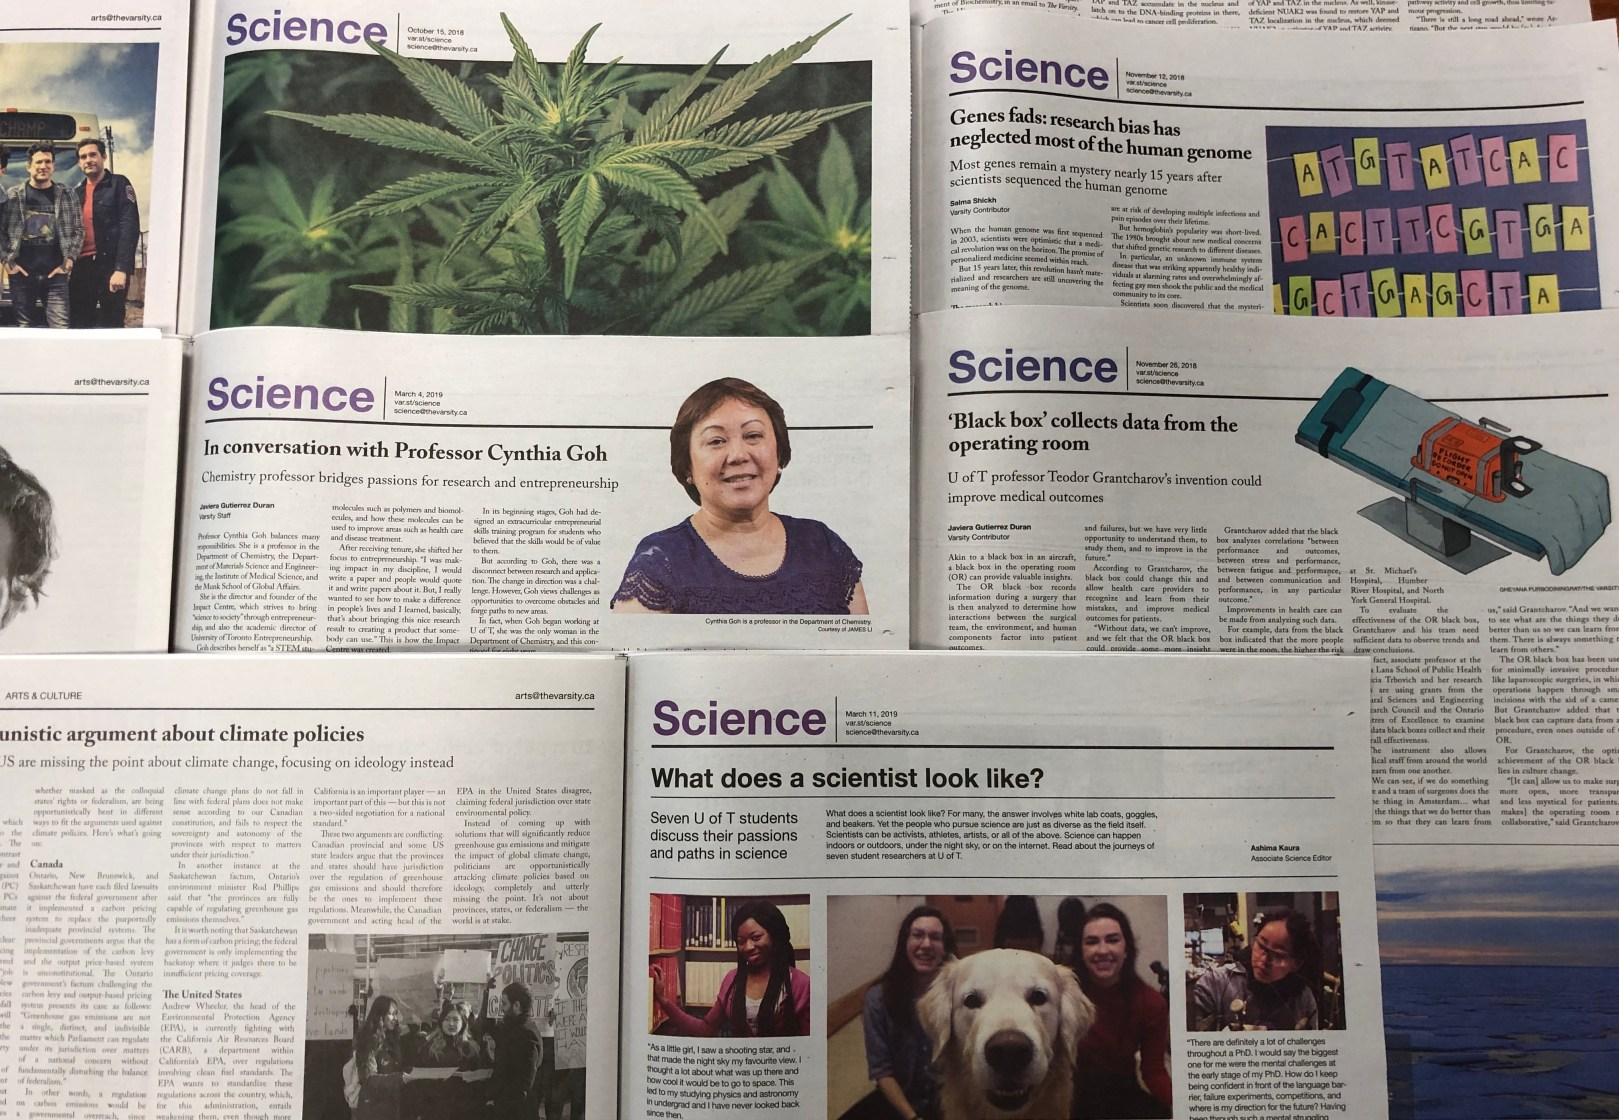 Spreads from The Varsity (student newspaper at University of Toronto) displaying various science headlines.